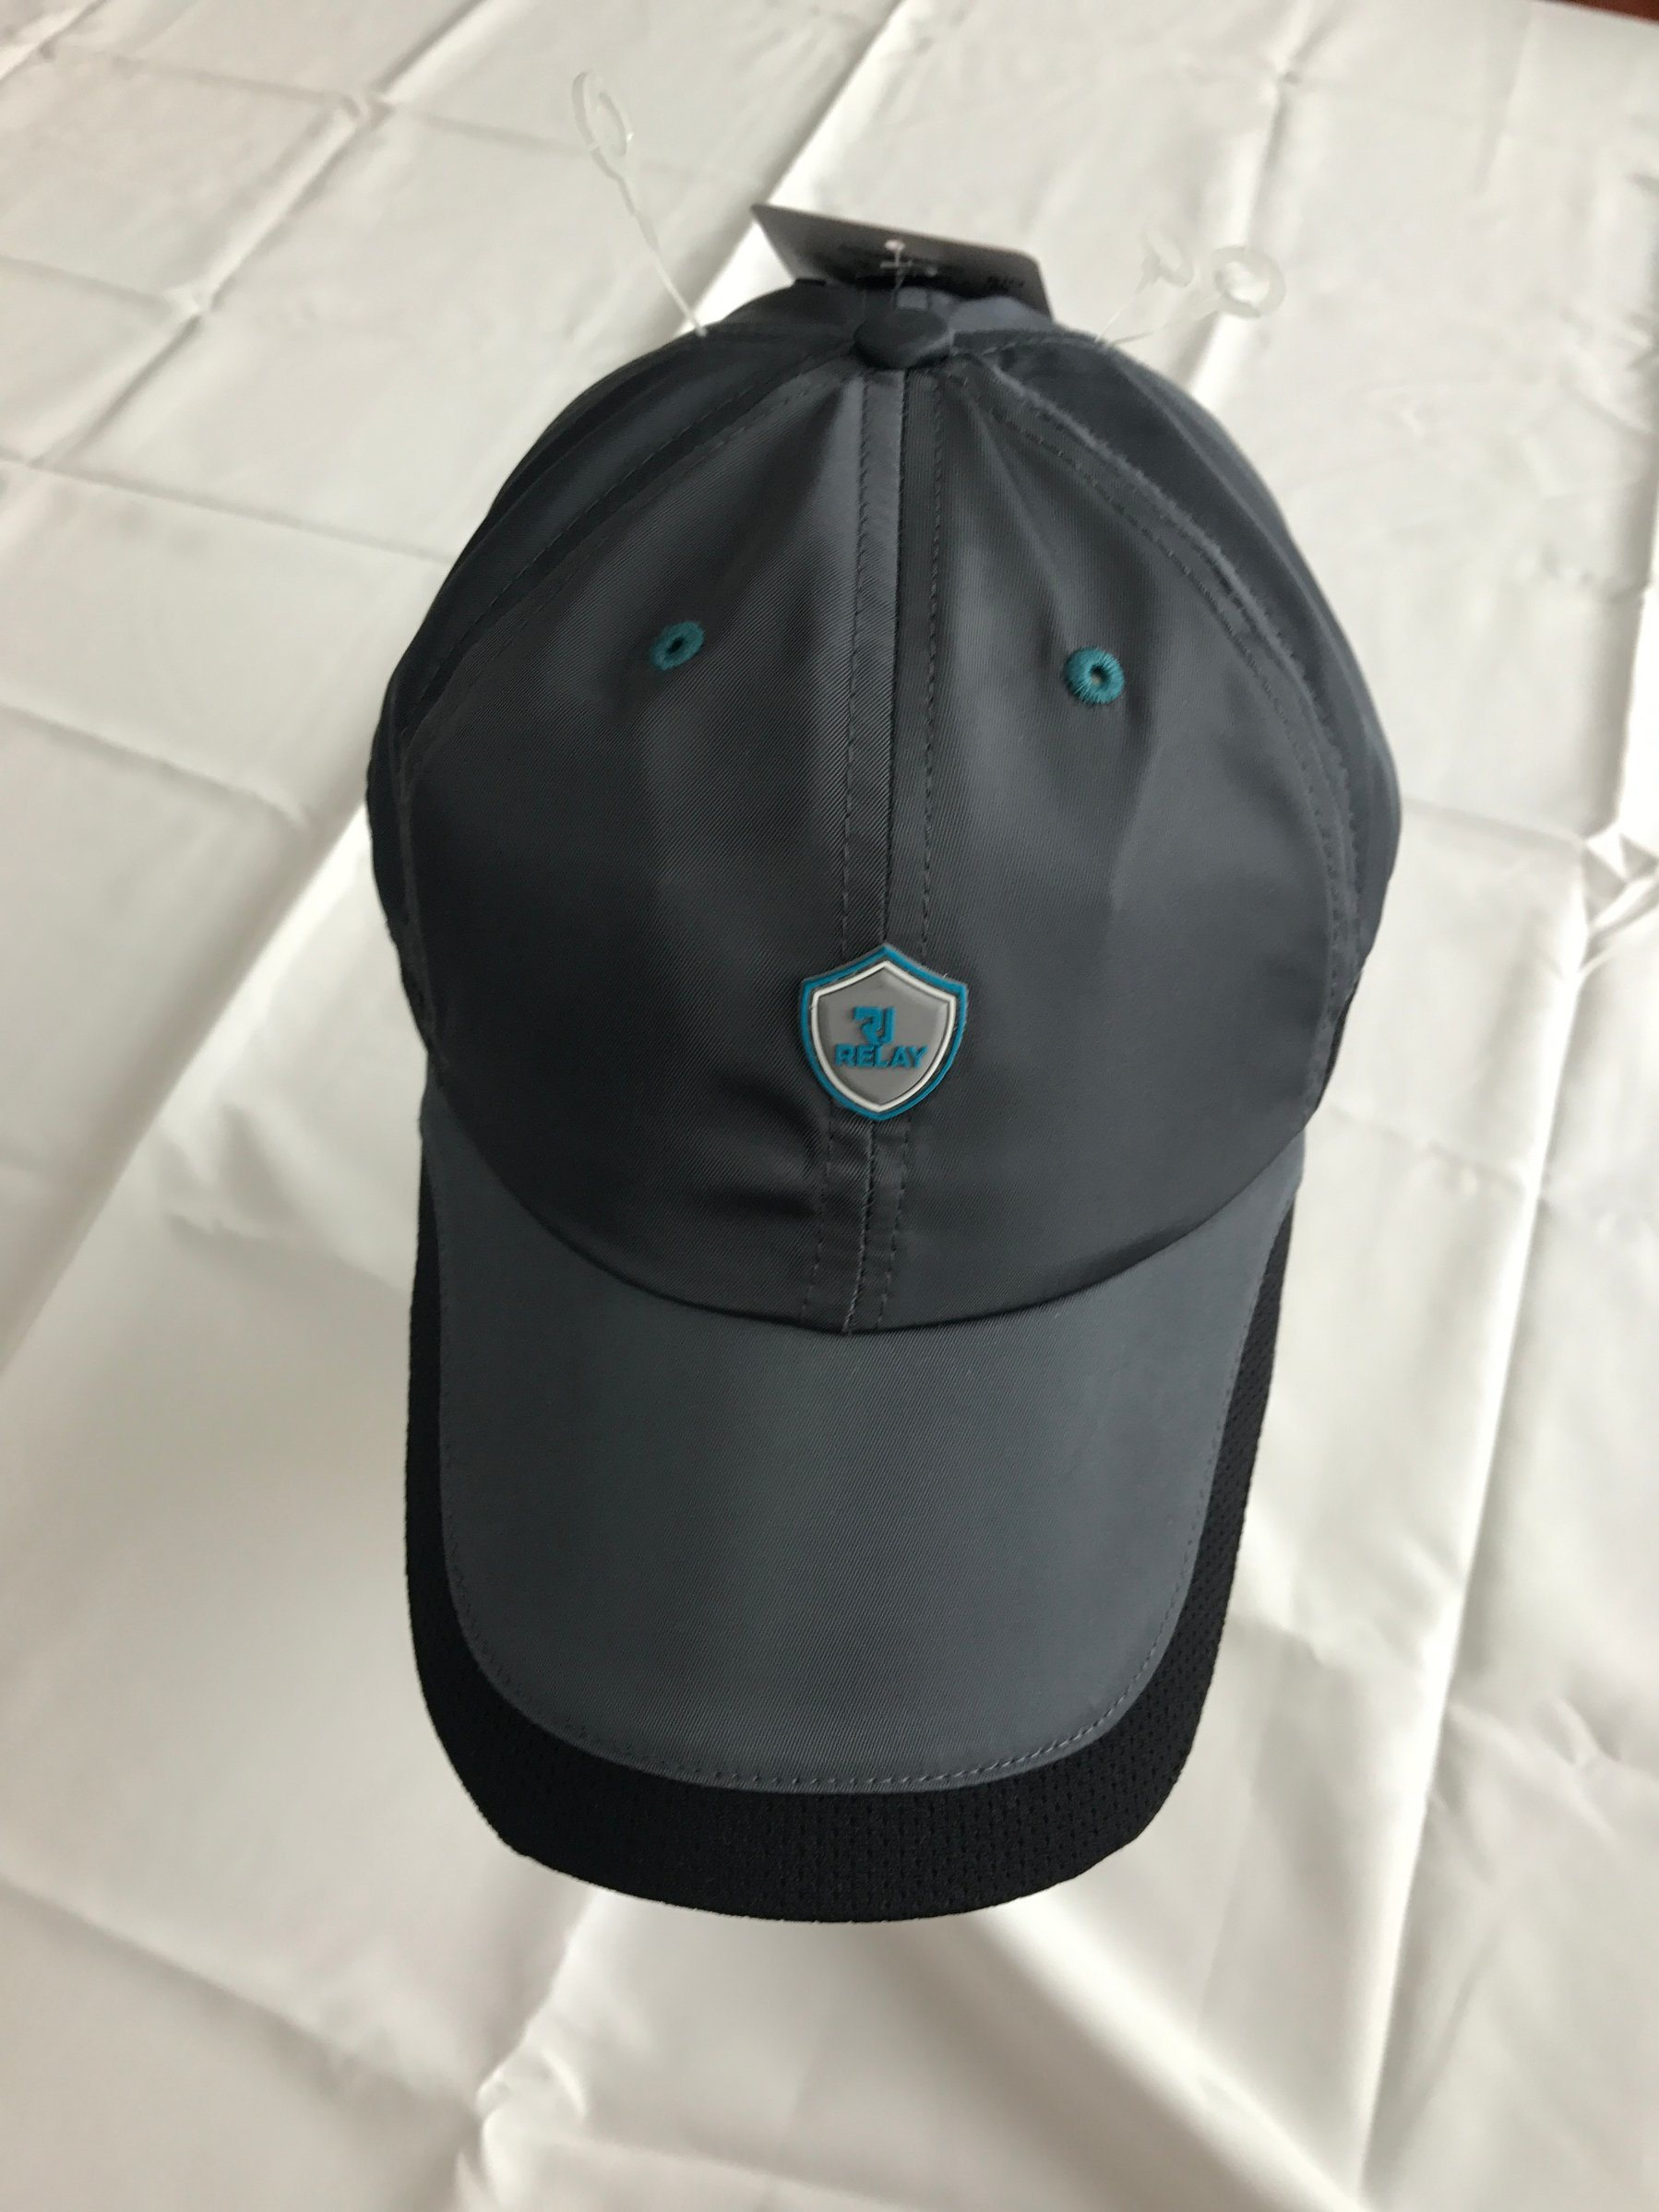 a2cca8c87 Wholesale New Hats Caps - Buy Reliable New Hats Caps from New Hats ...